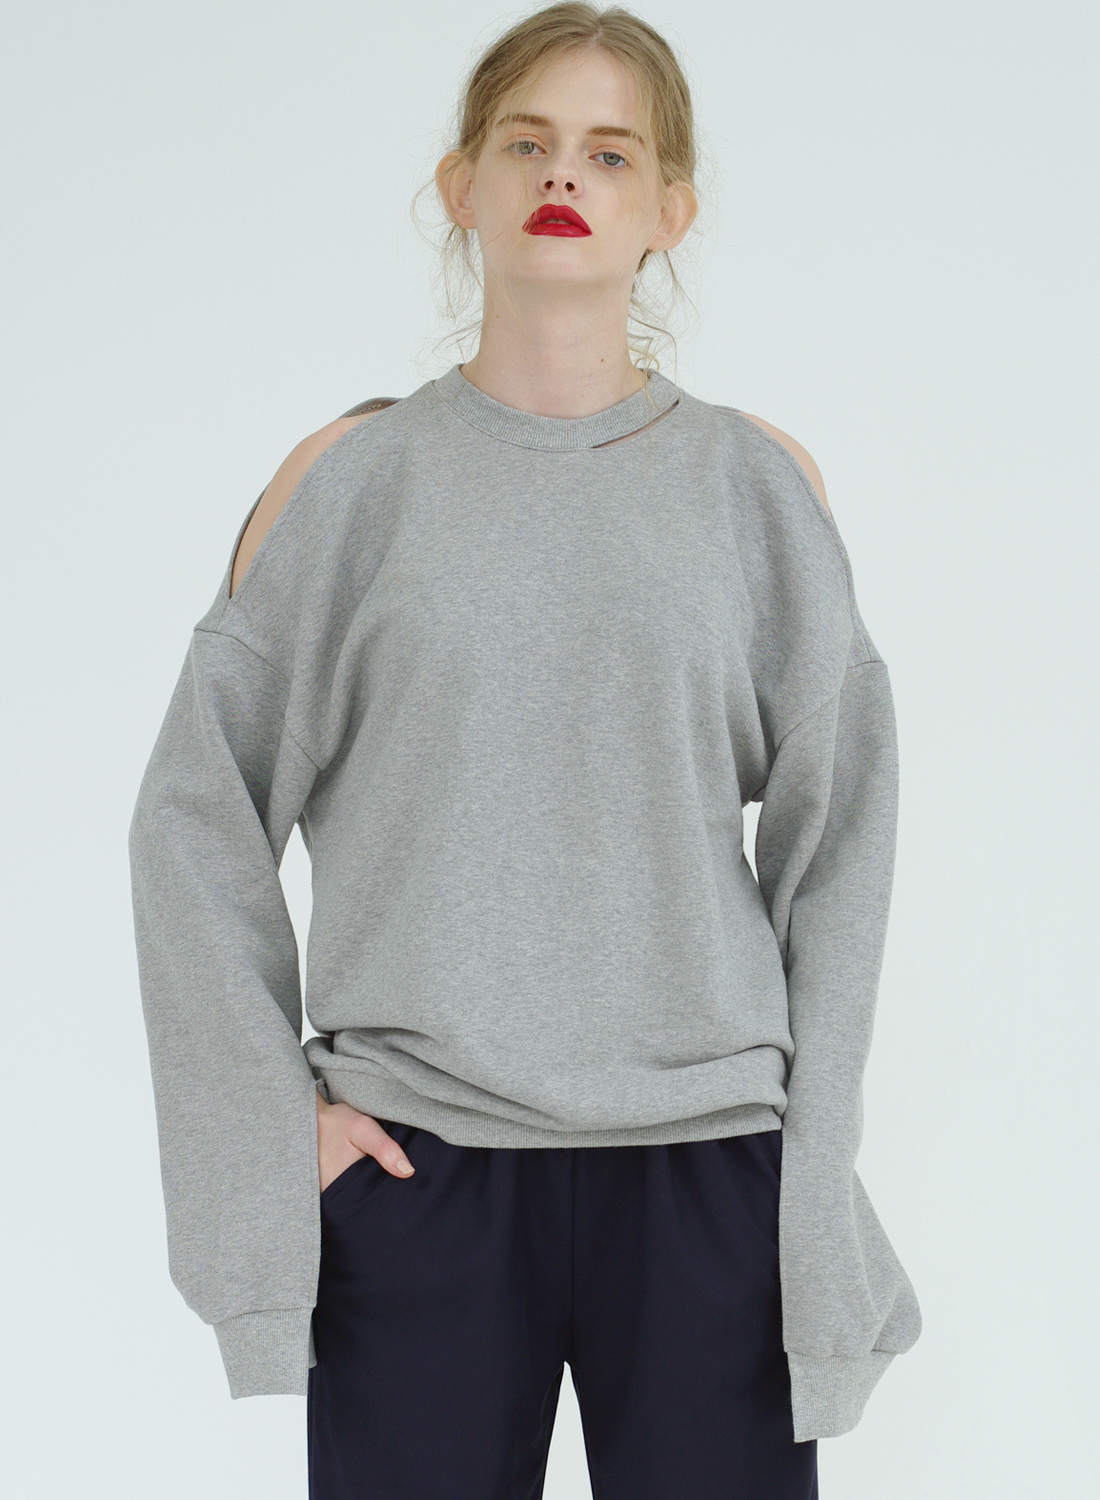 FW16 SLIT SWEATSHIRT GRAY